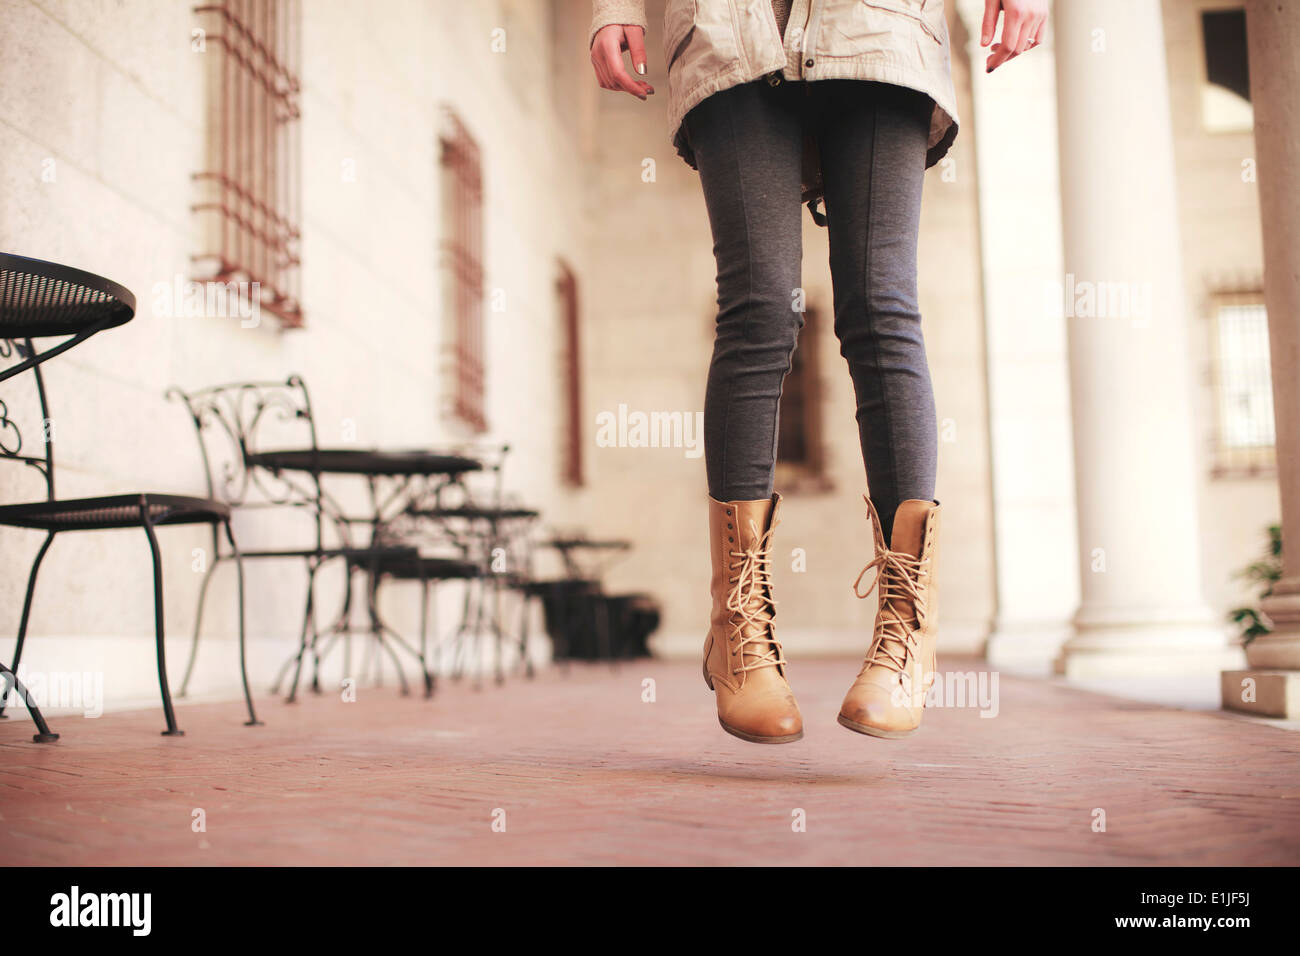 Young woman waist down jumping next to sidewalk cafe - Stock Image